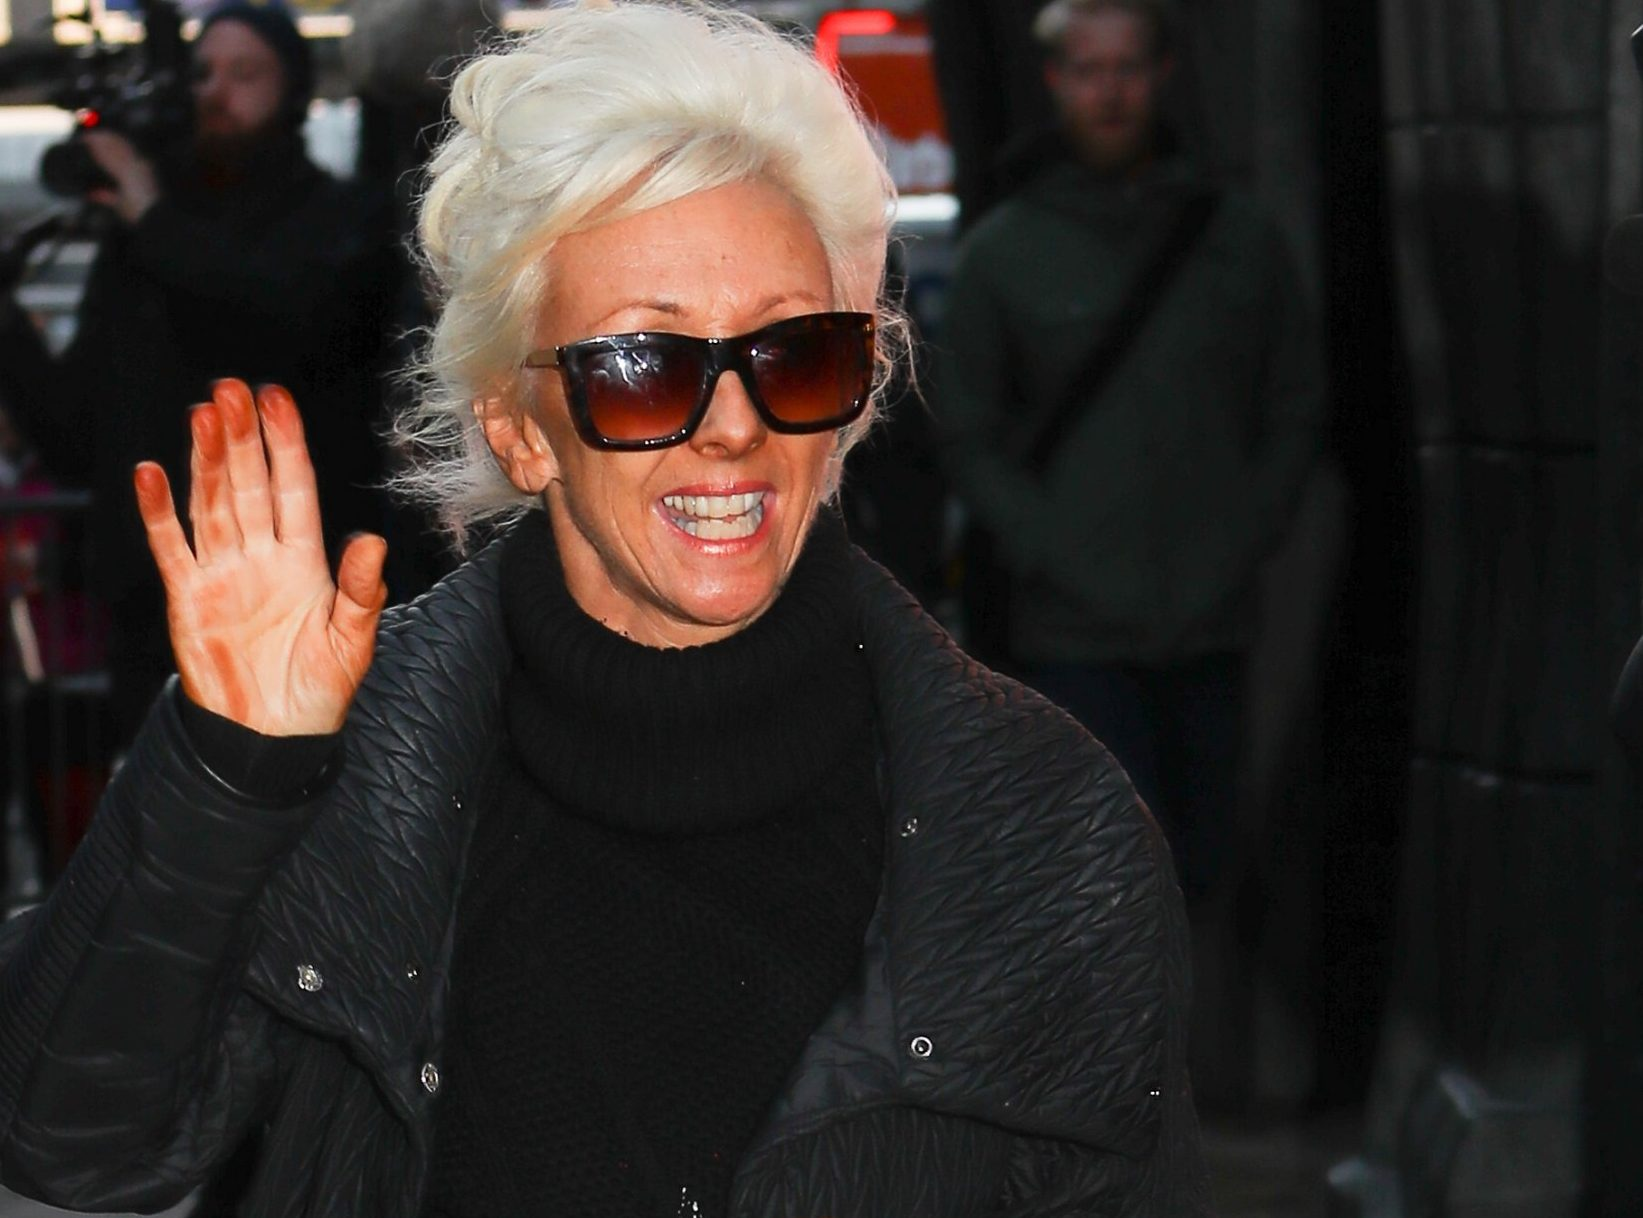 Debbie McGee's had a bit of a fake tan fail ahead of Strictly's Blackpool special